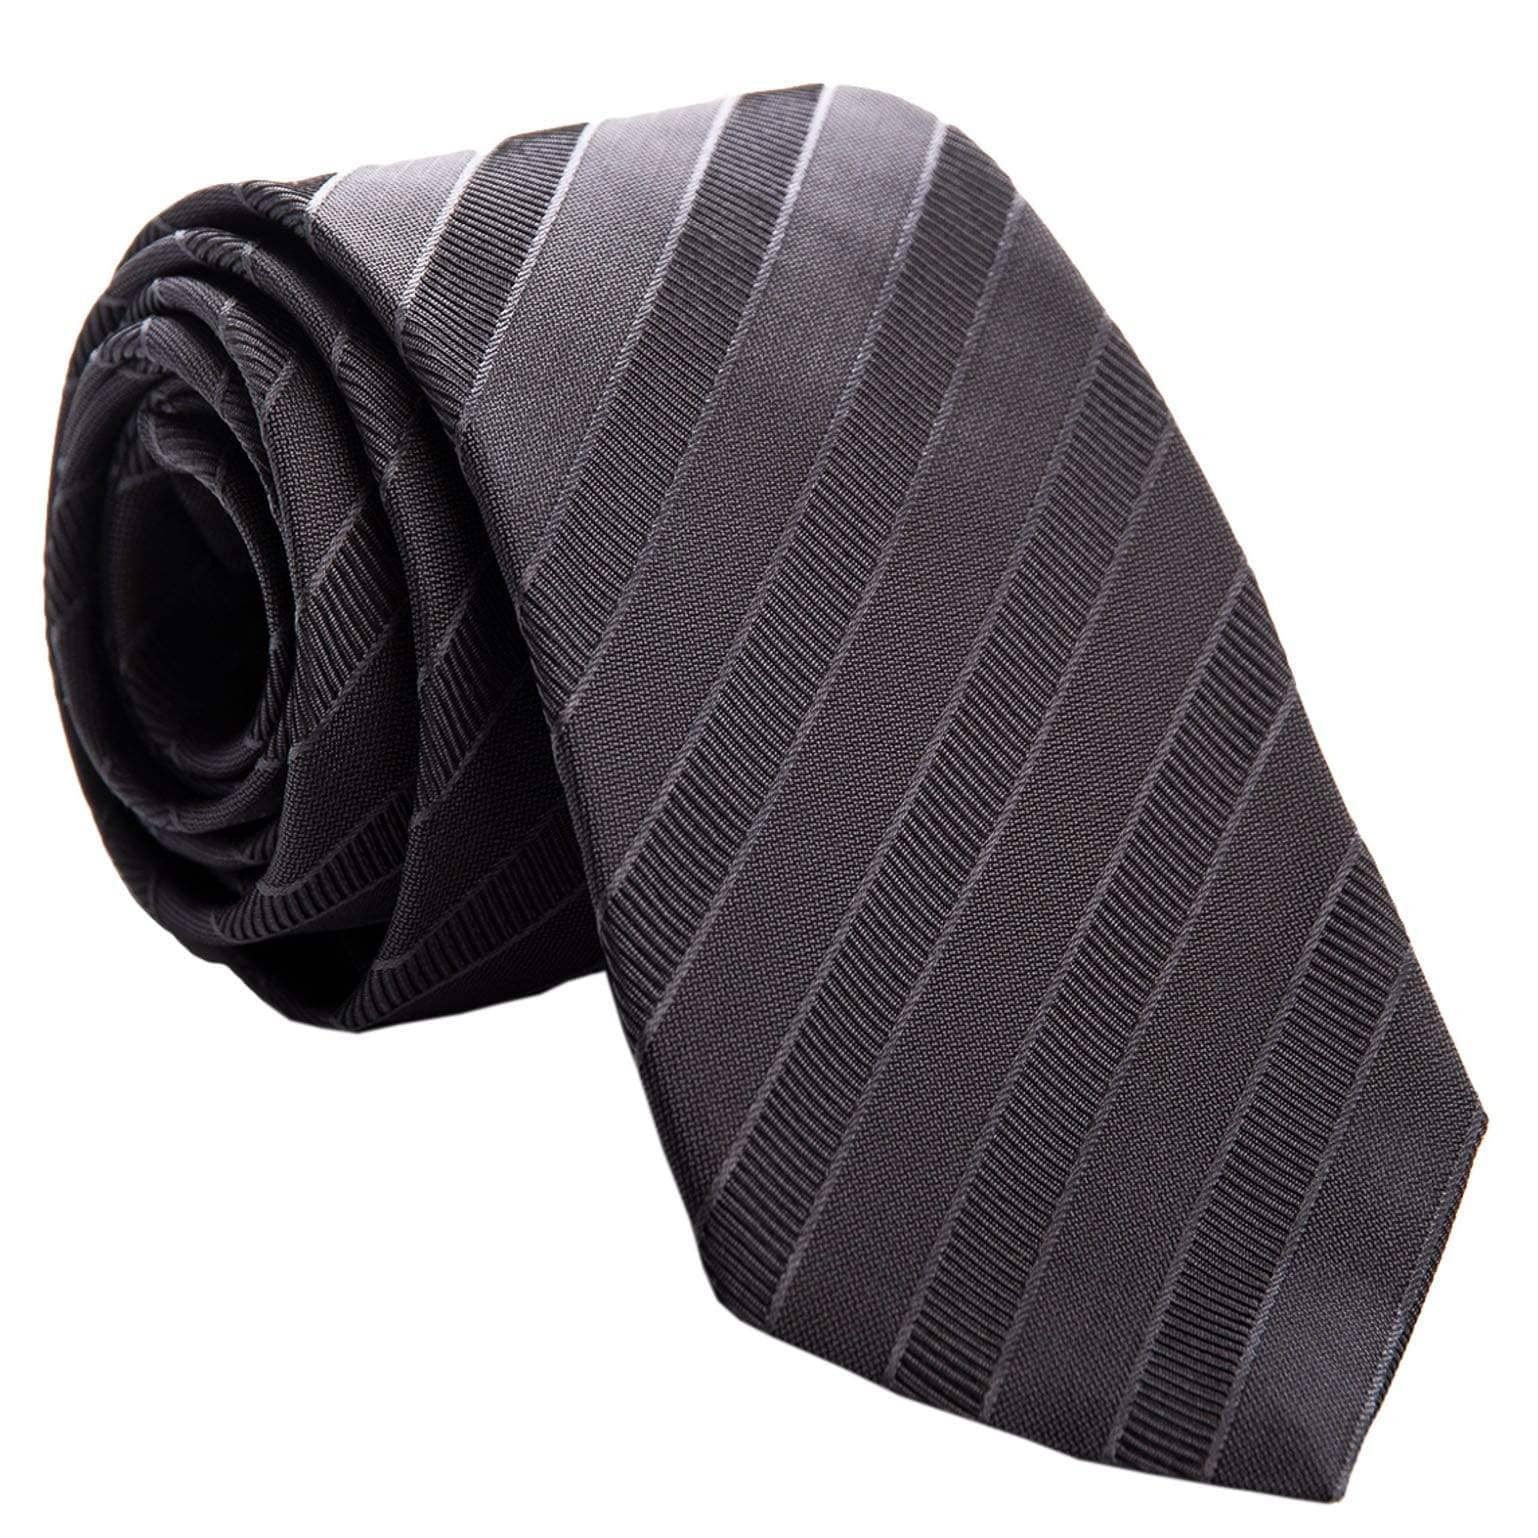 Extra Long Grey Striped Tie - 3 Fold - Made in Italy